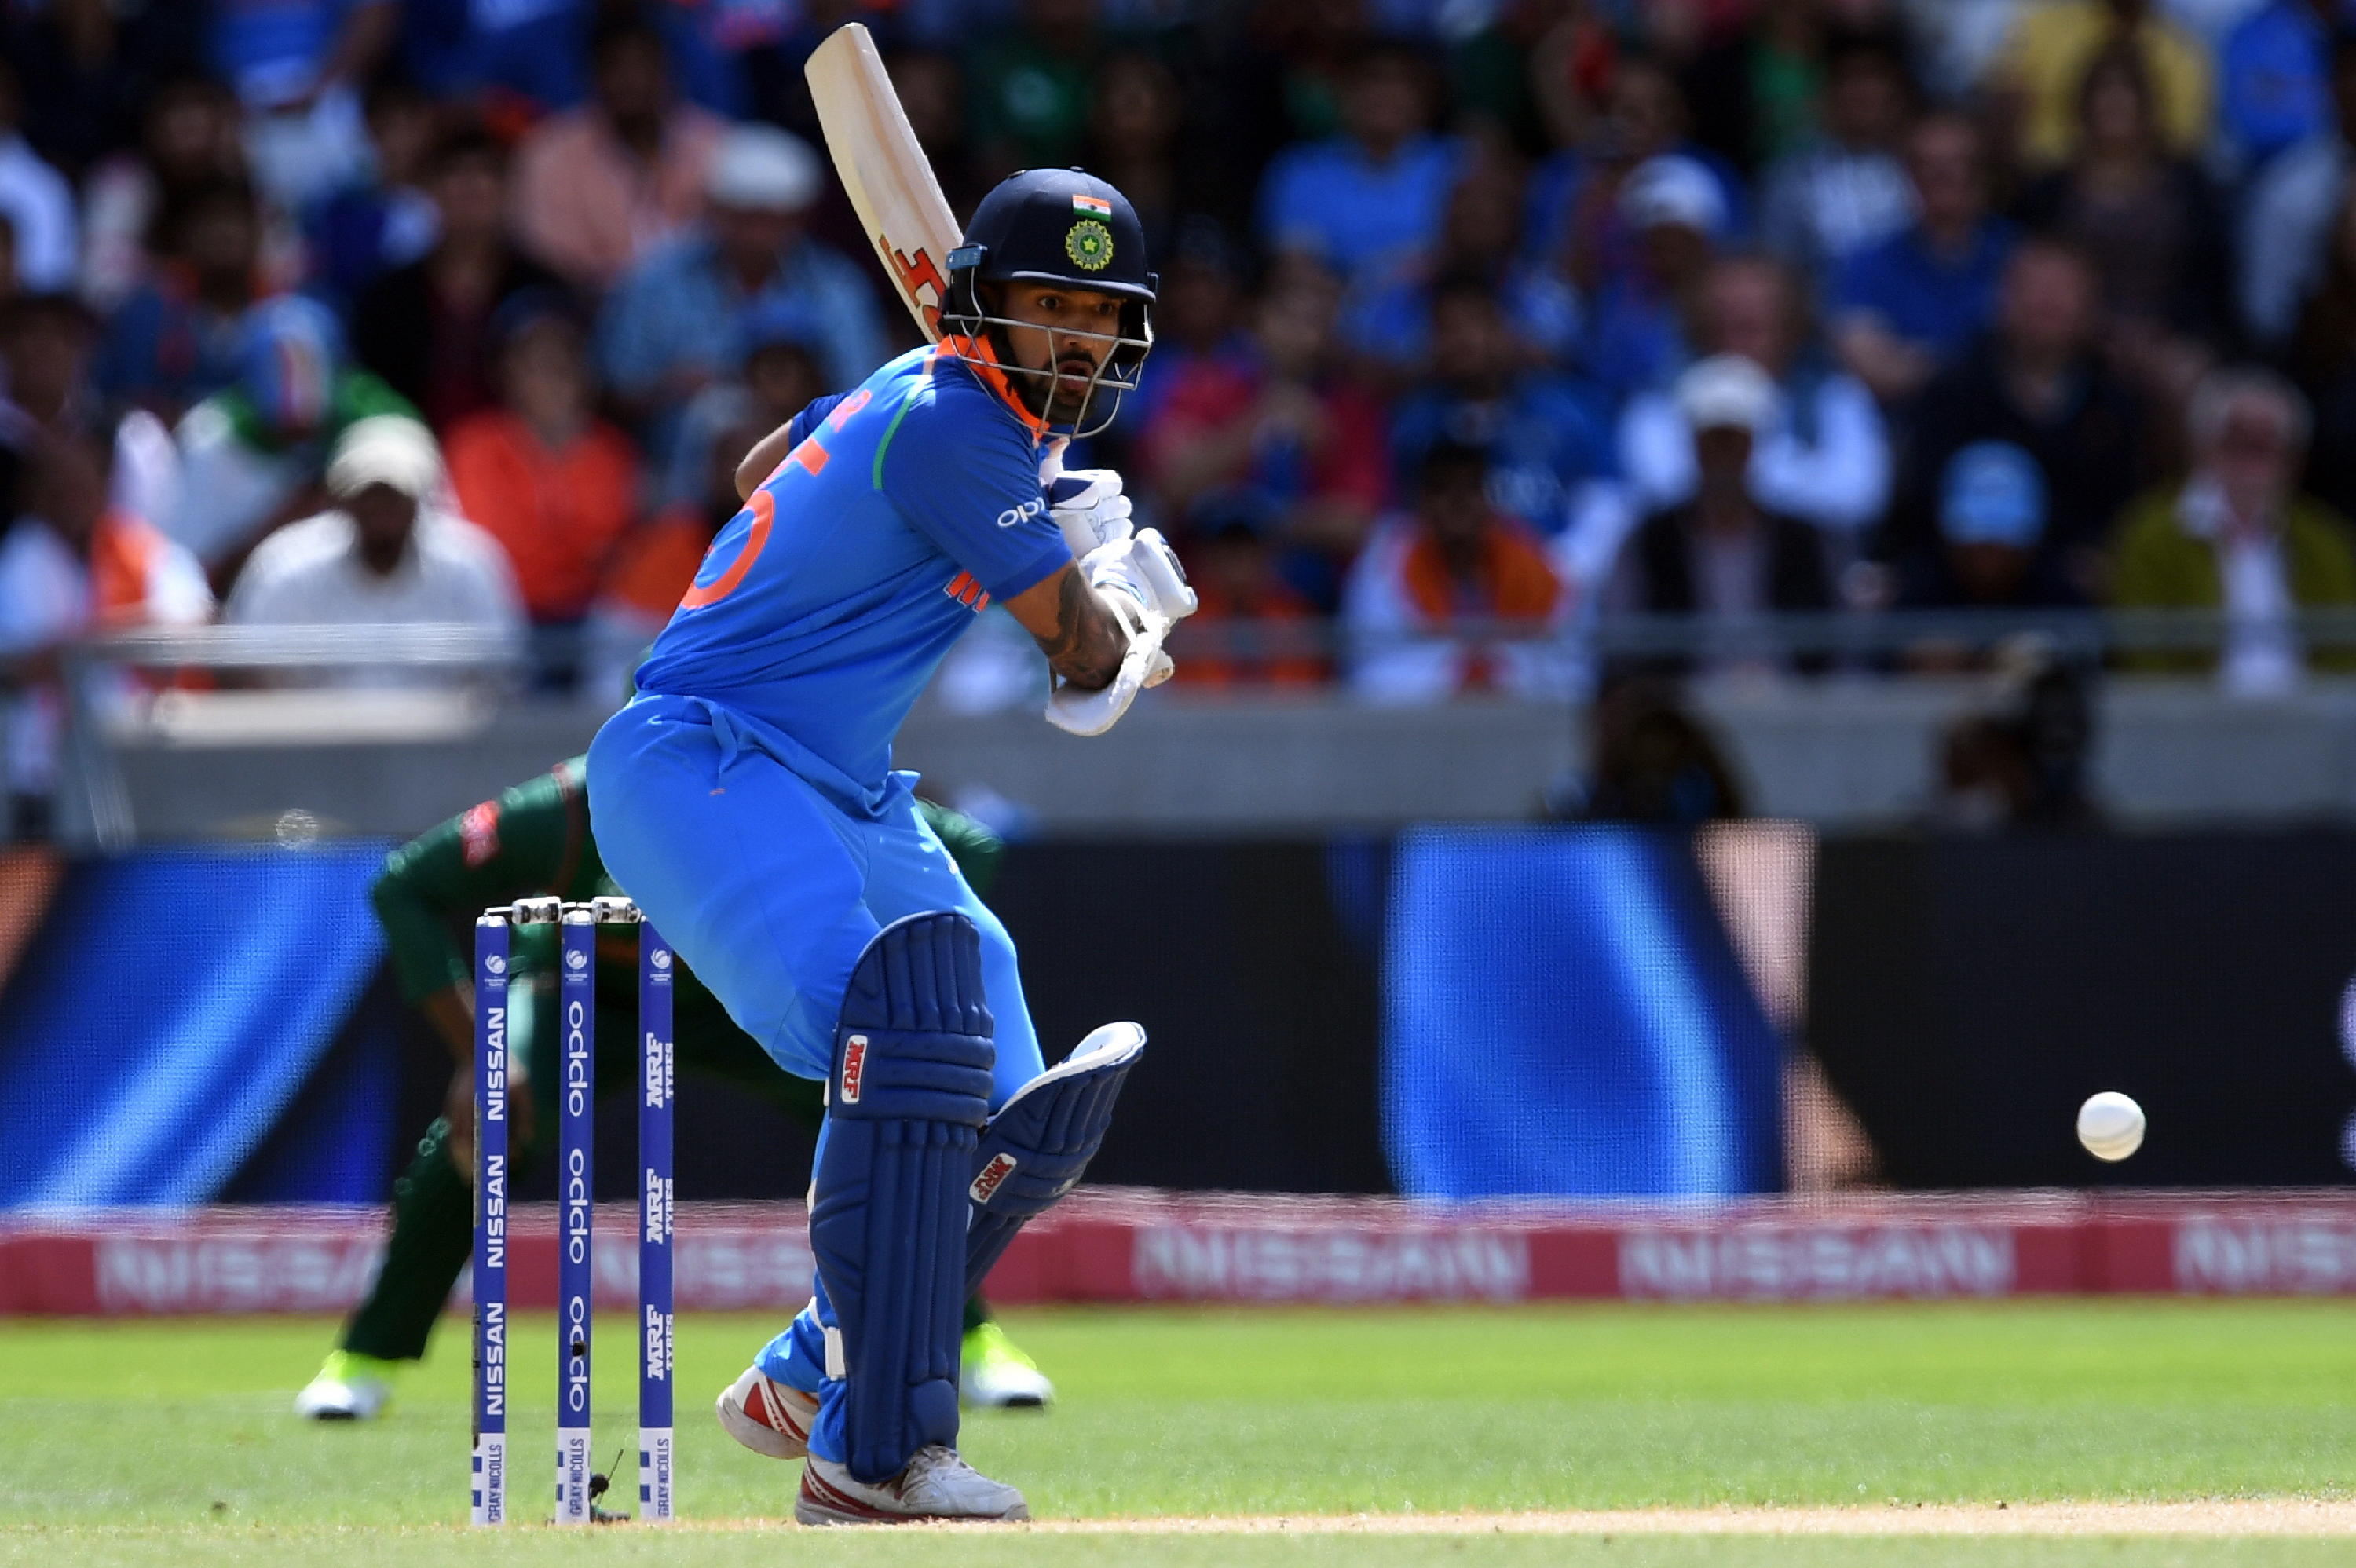 Shikhar Dhawan has been a man in form in this tournament. Photo: AFP